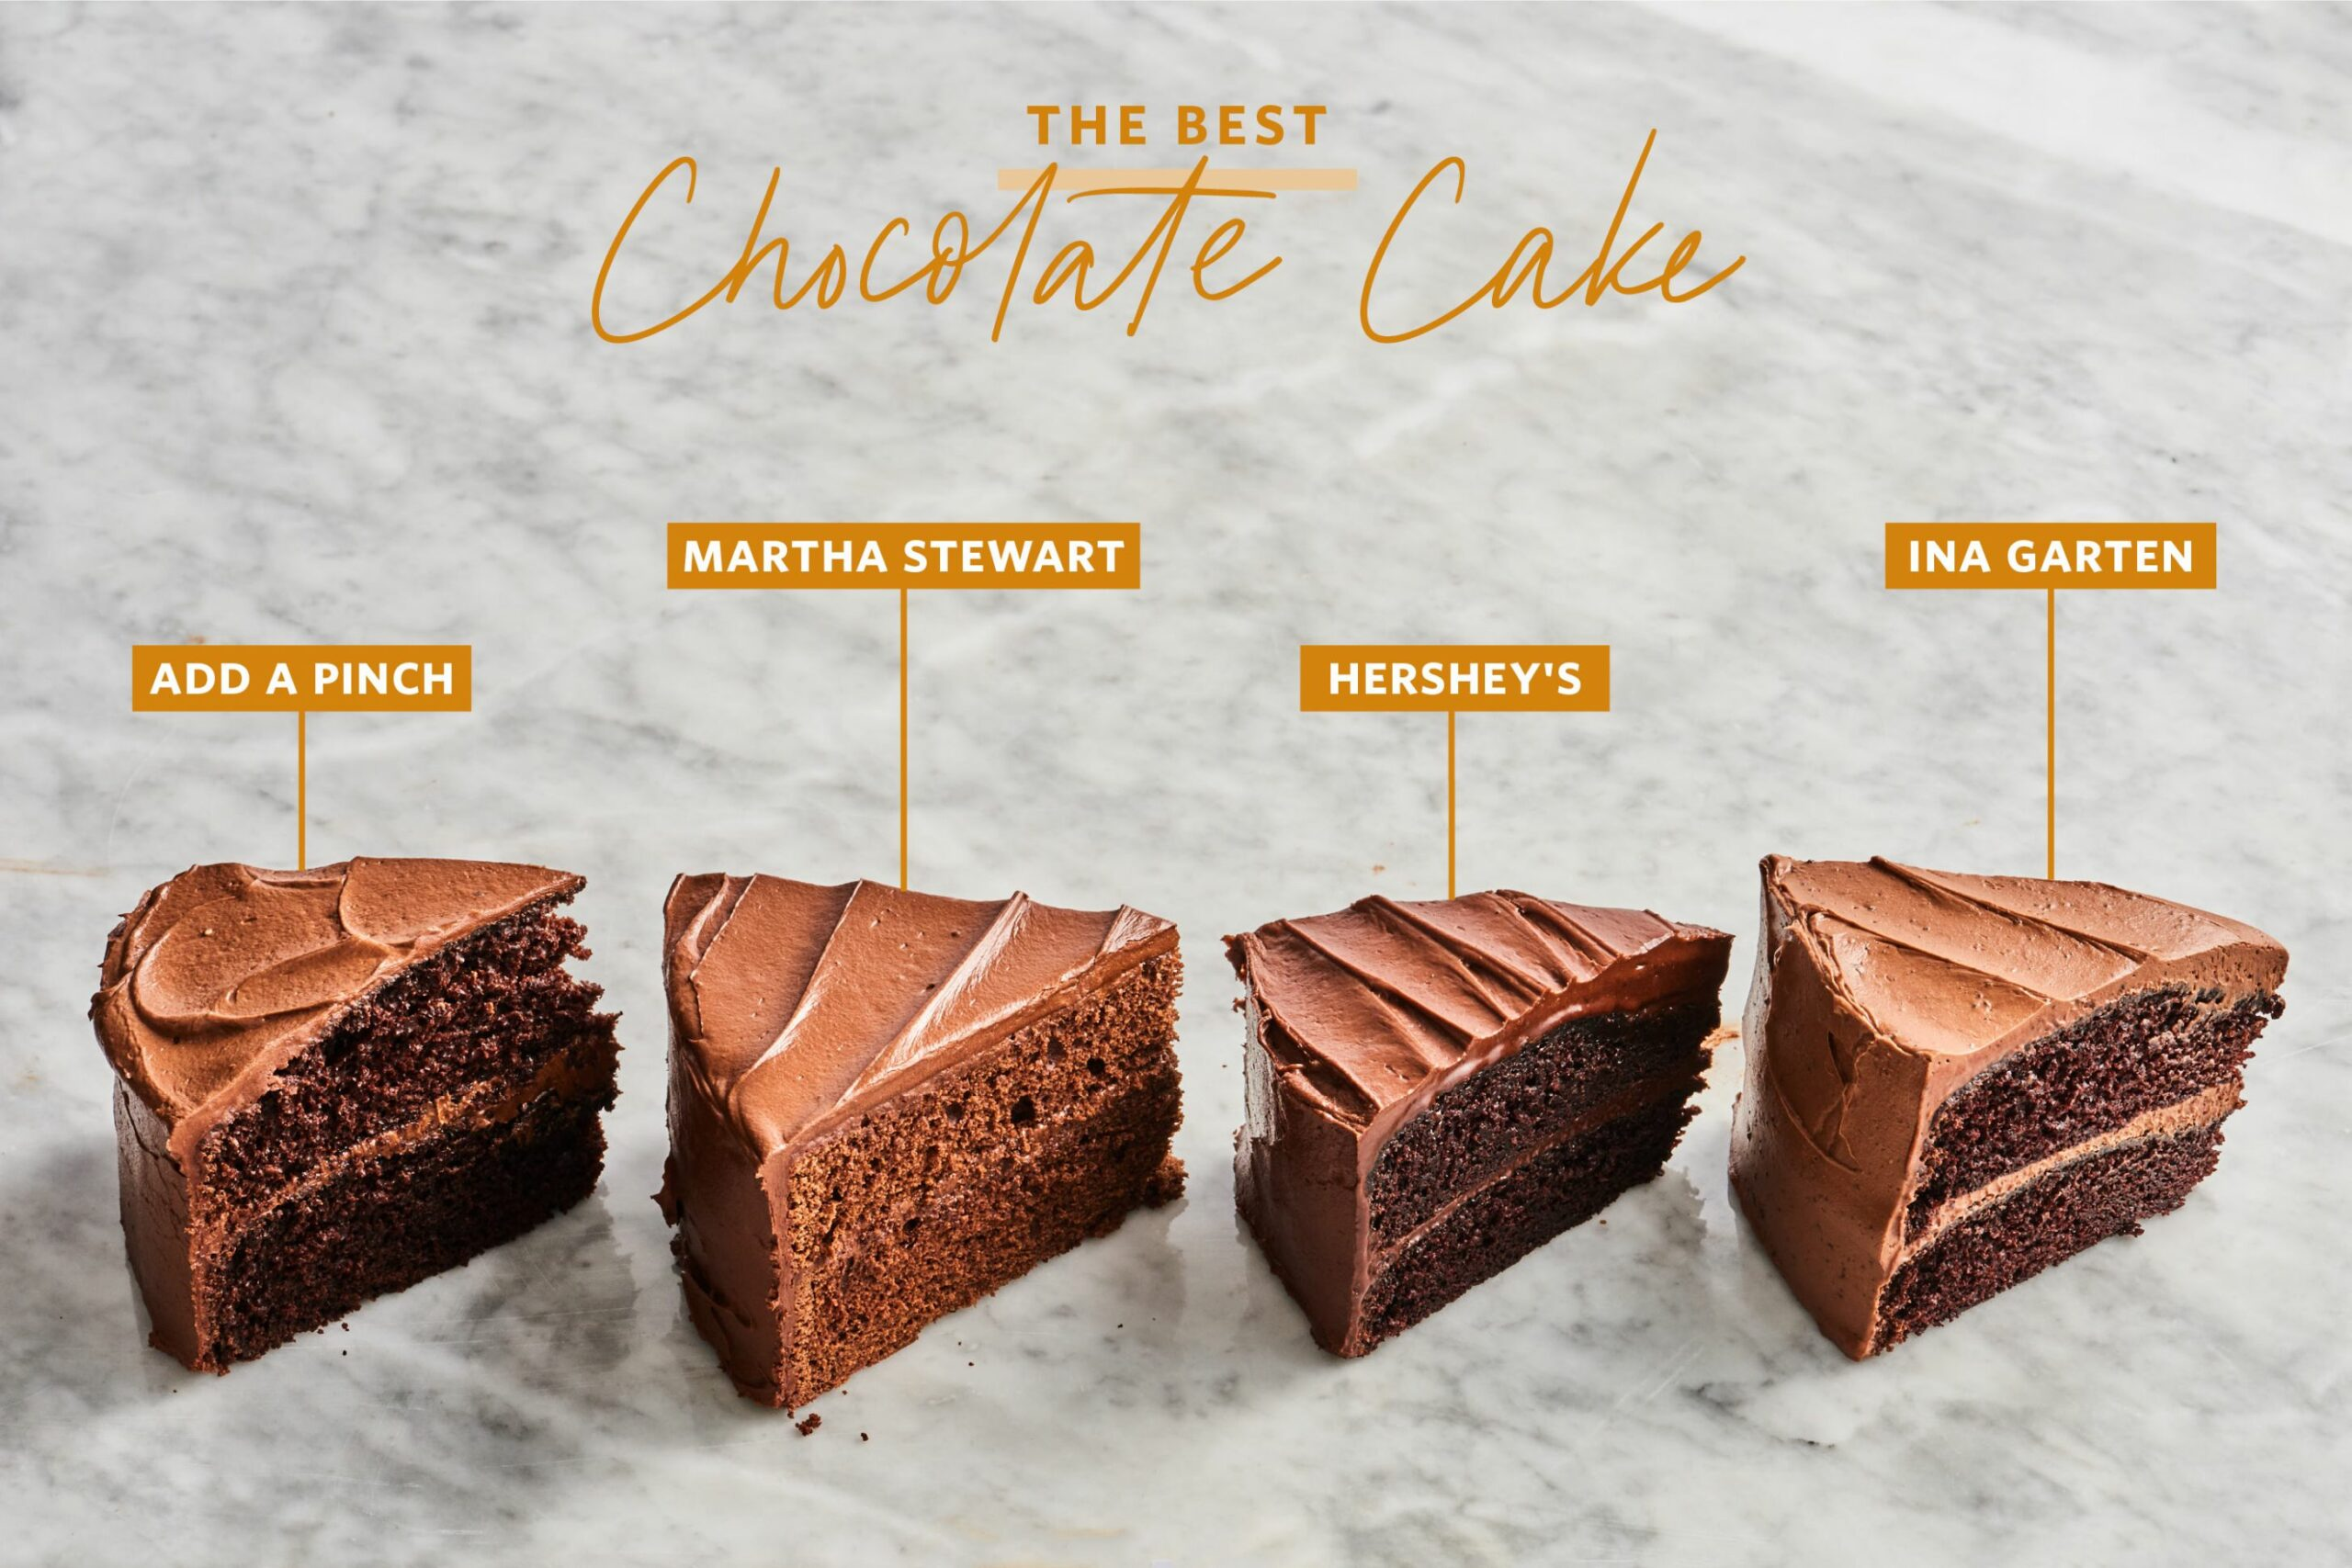 I Tried Four Popular Chocolate Cake Recipes and Found the Best One ..